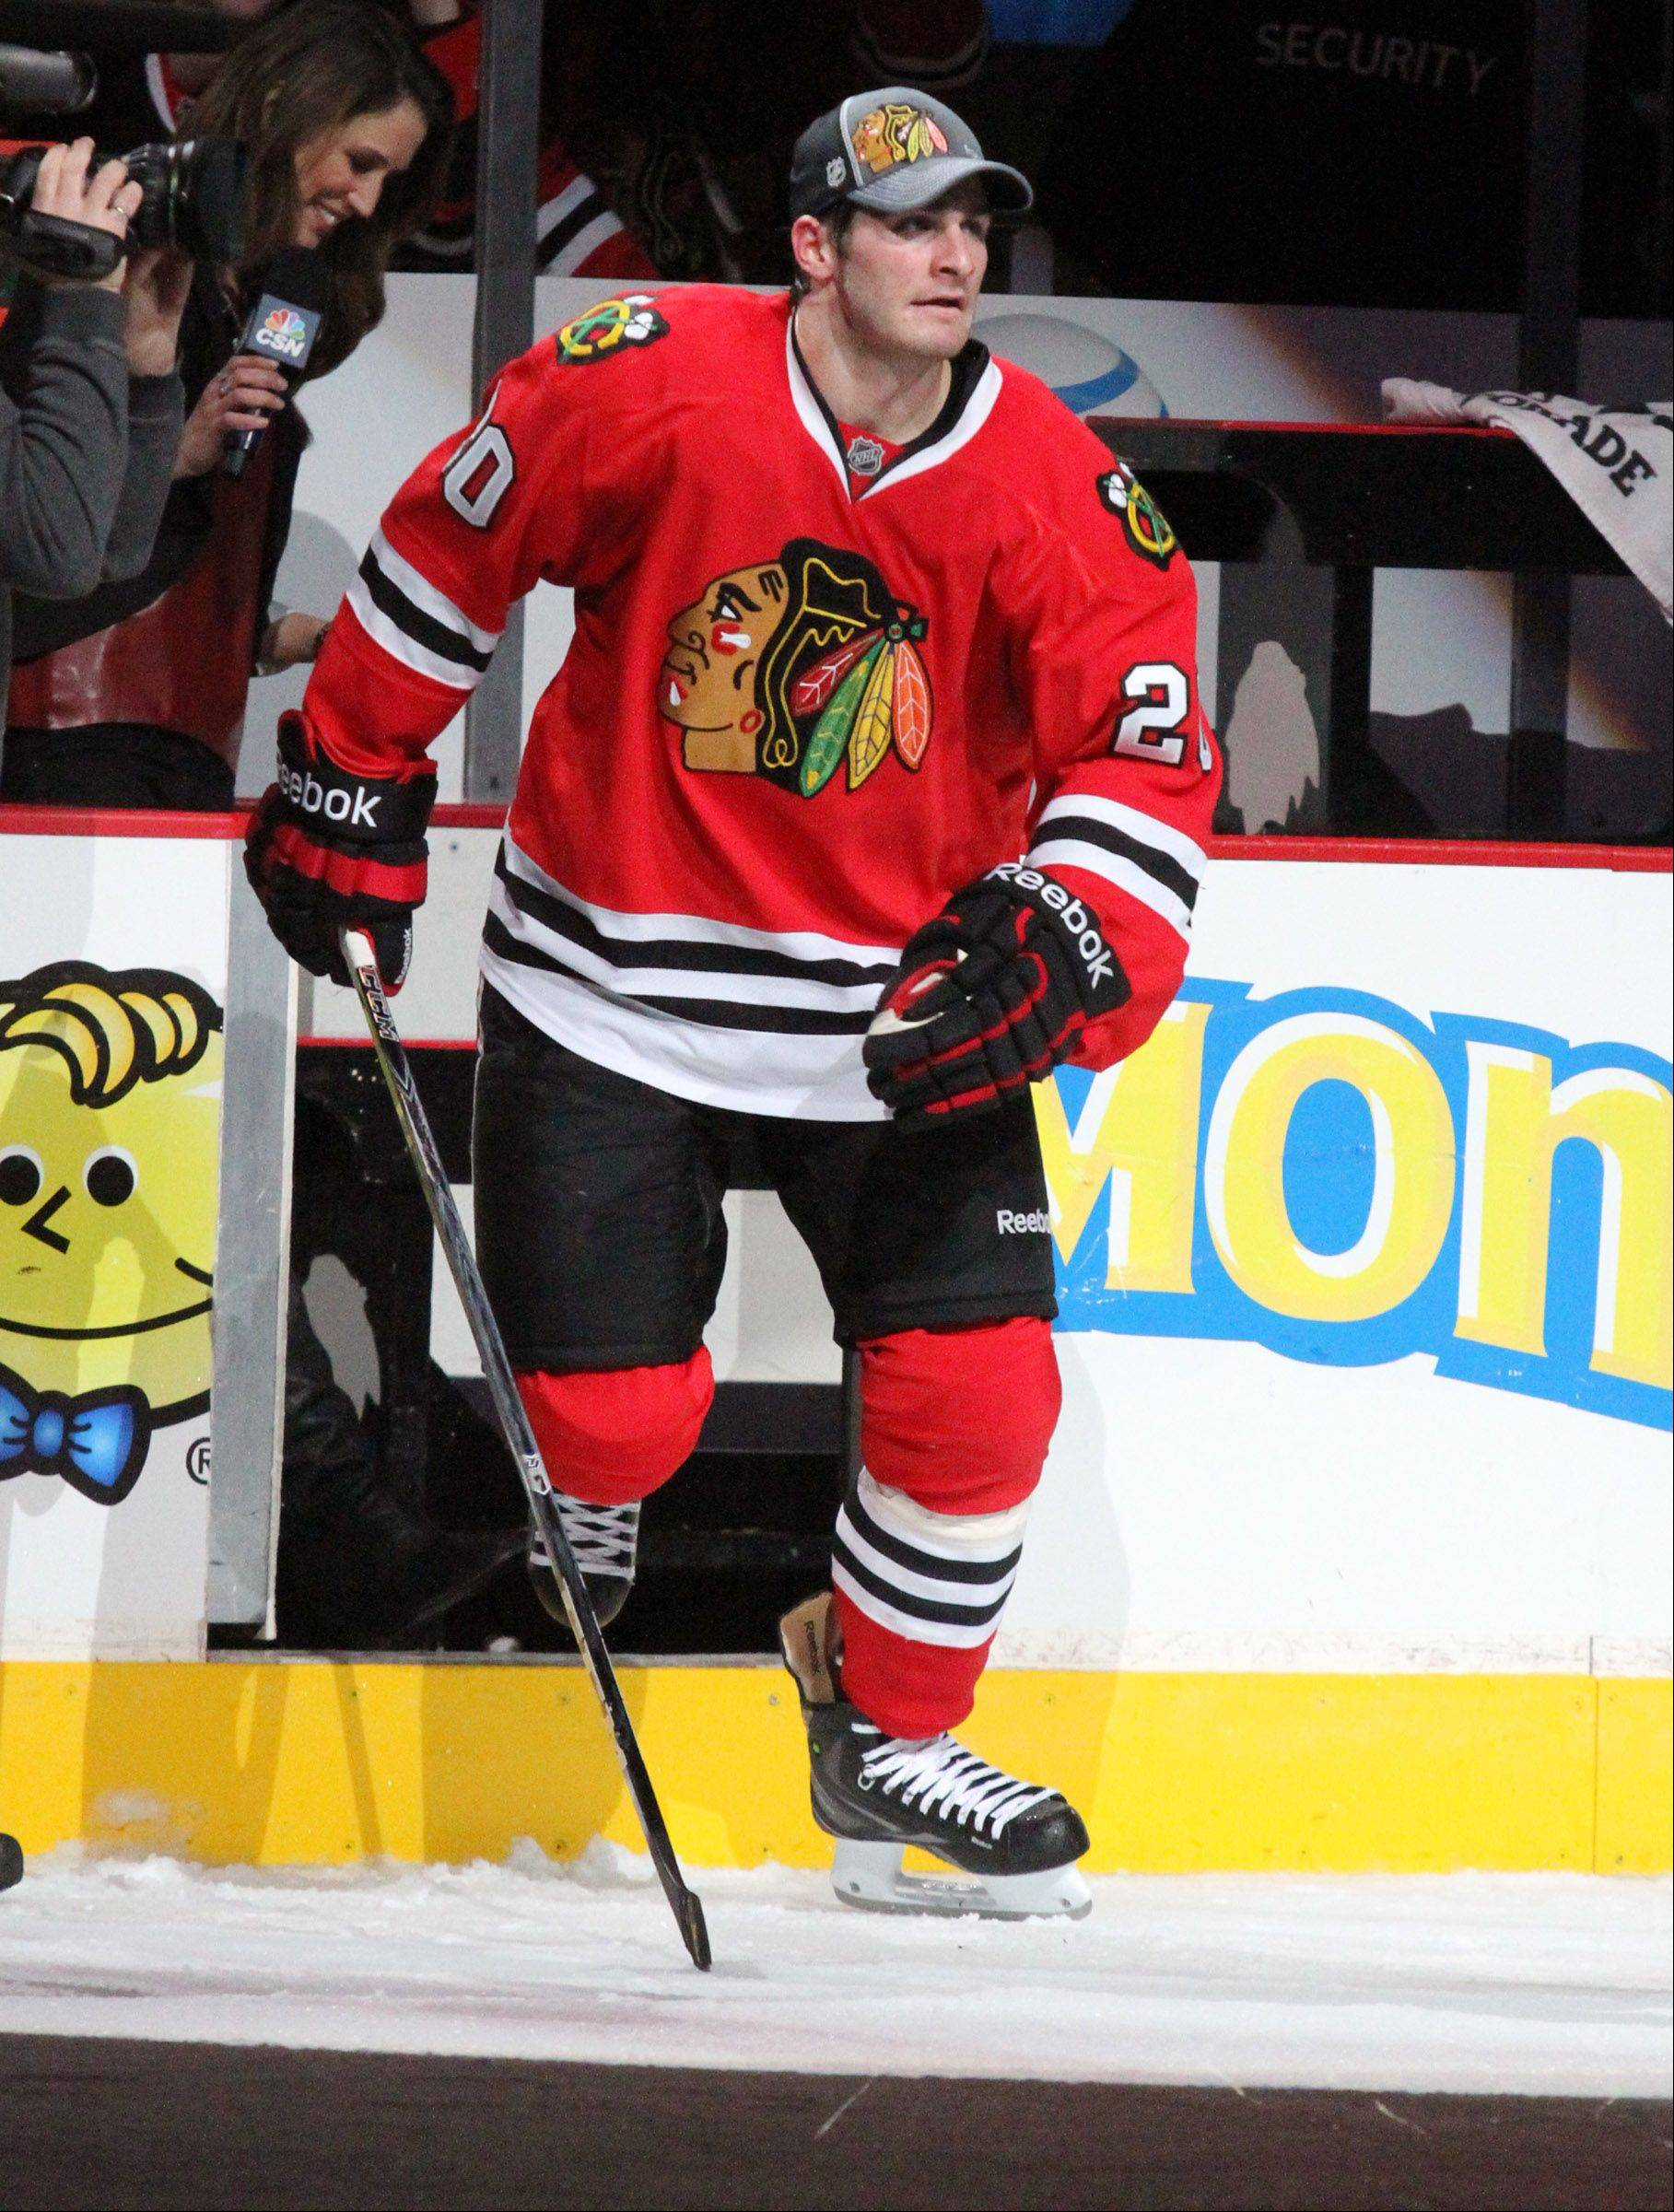 When the Blackhawks opening training camp, Brandon Saad will be spending some time at second-line center after playing last season at left wing.